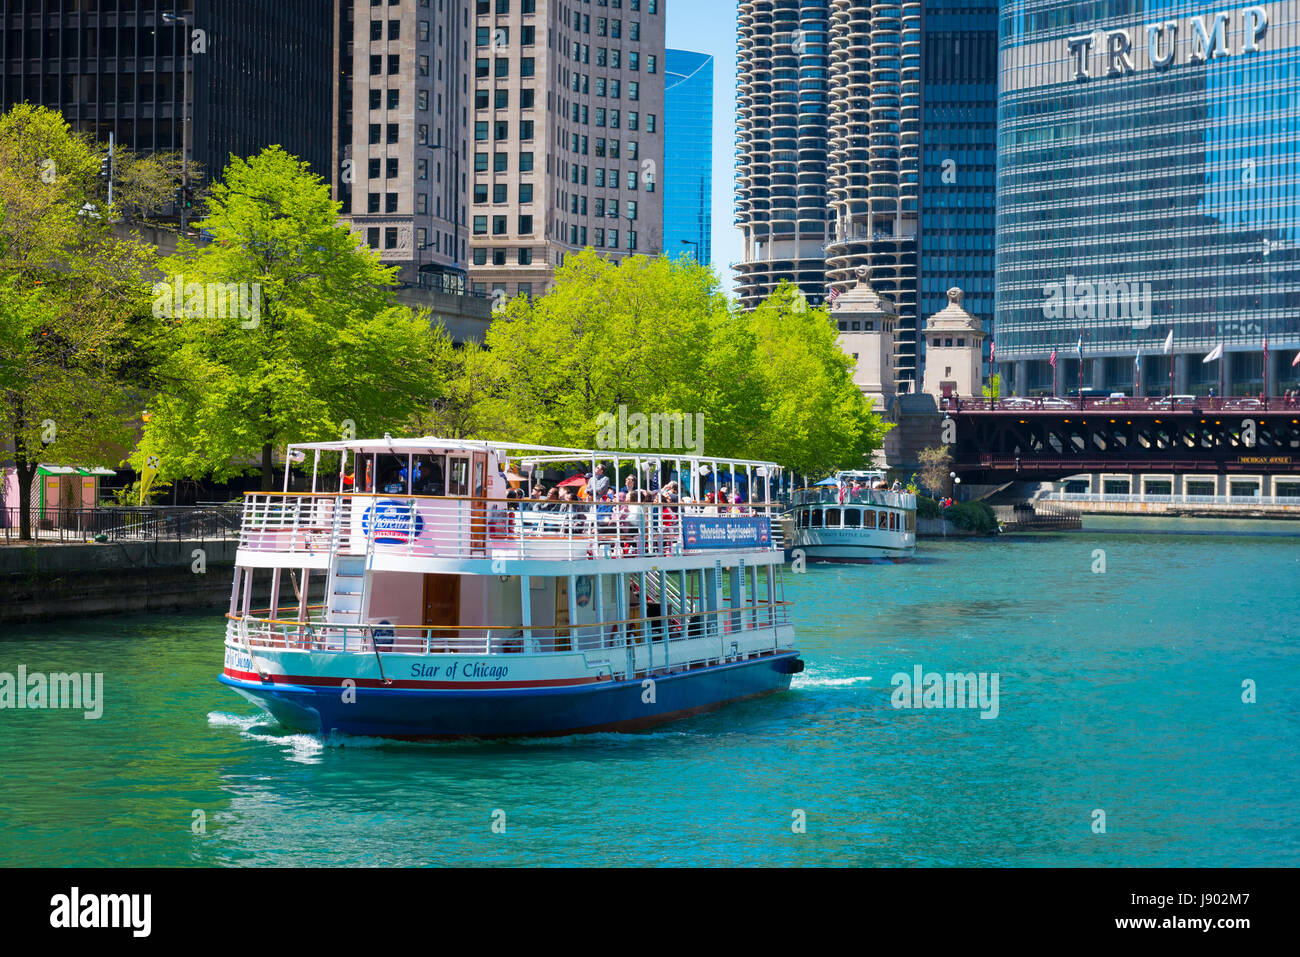 View Chicago River Illinois Trump Tower skyscrapers blue sky Star of Chicago sightseers tourists tourism architectural - Stock Image